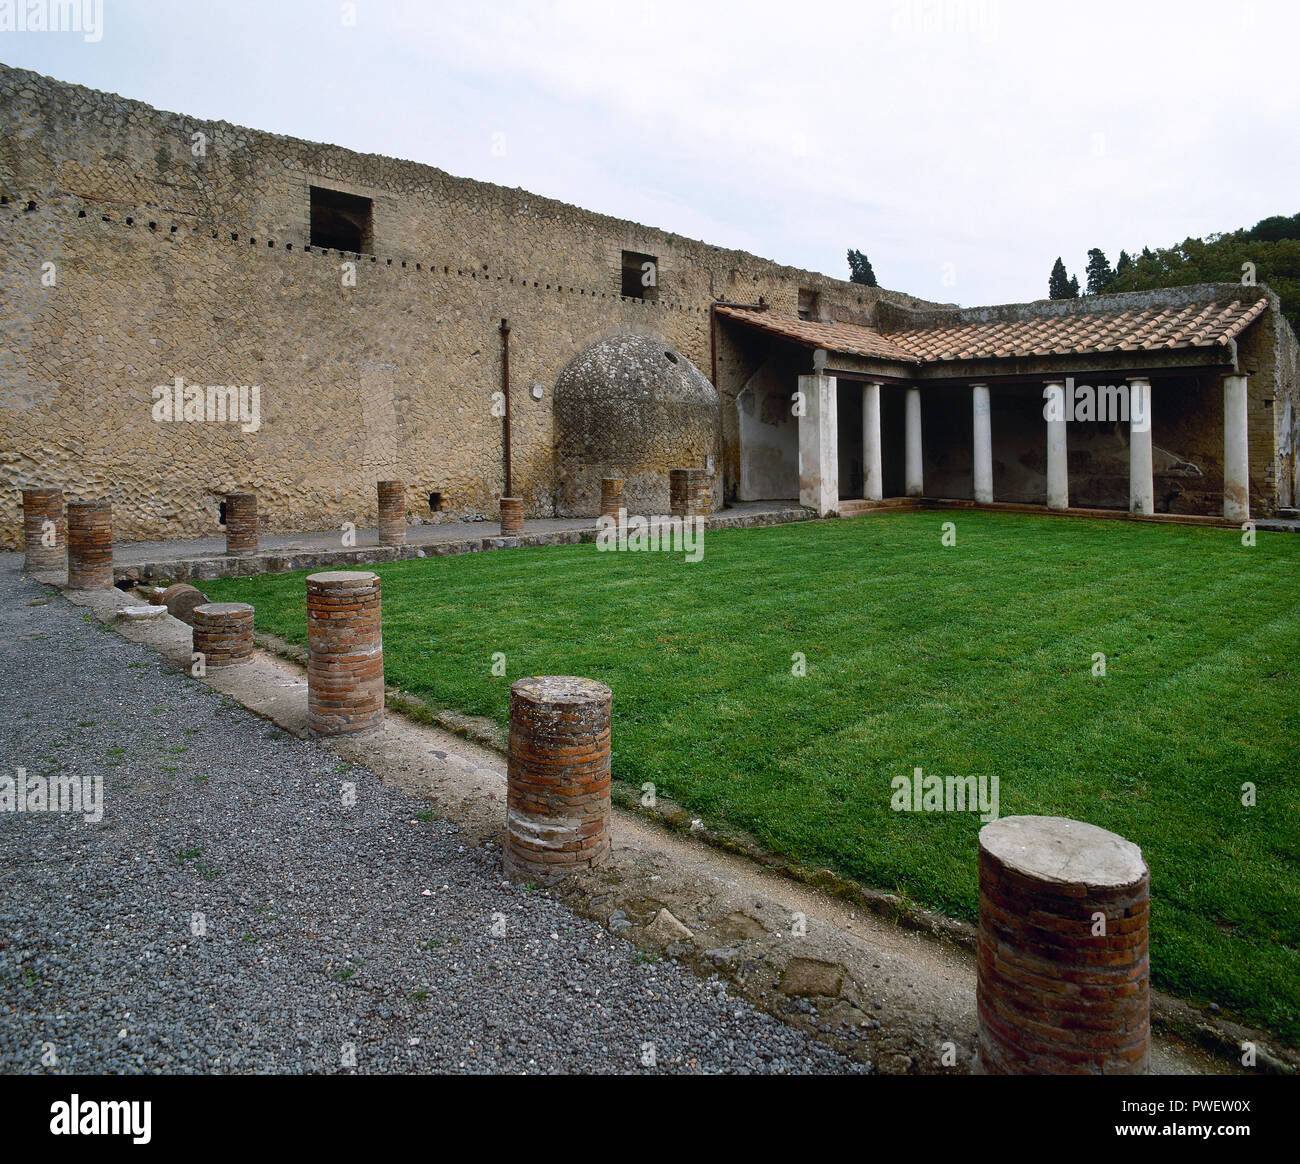 Italy. Herculaneum. Ancient Roman city destroyed by the eruption of the Vesuvius at 79 AD. Urban Baths. 1st century BC. Exterior. La Campania. - Stock Image